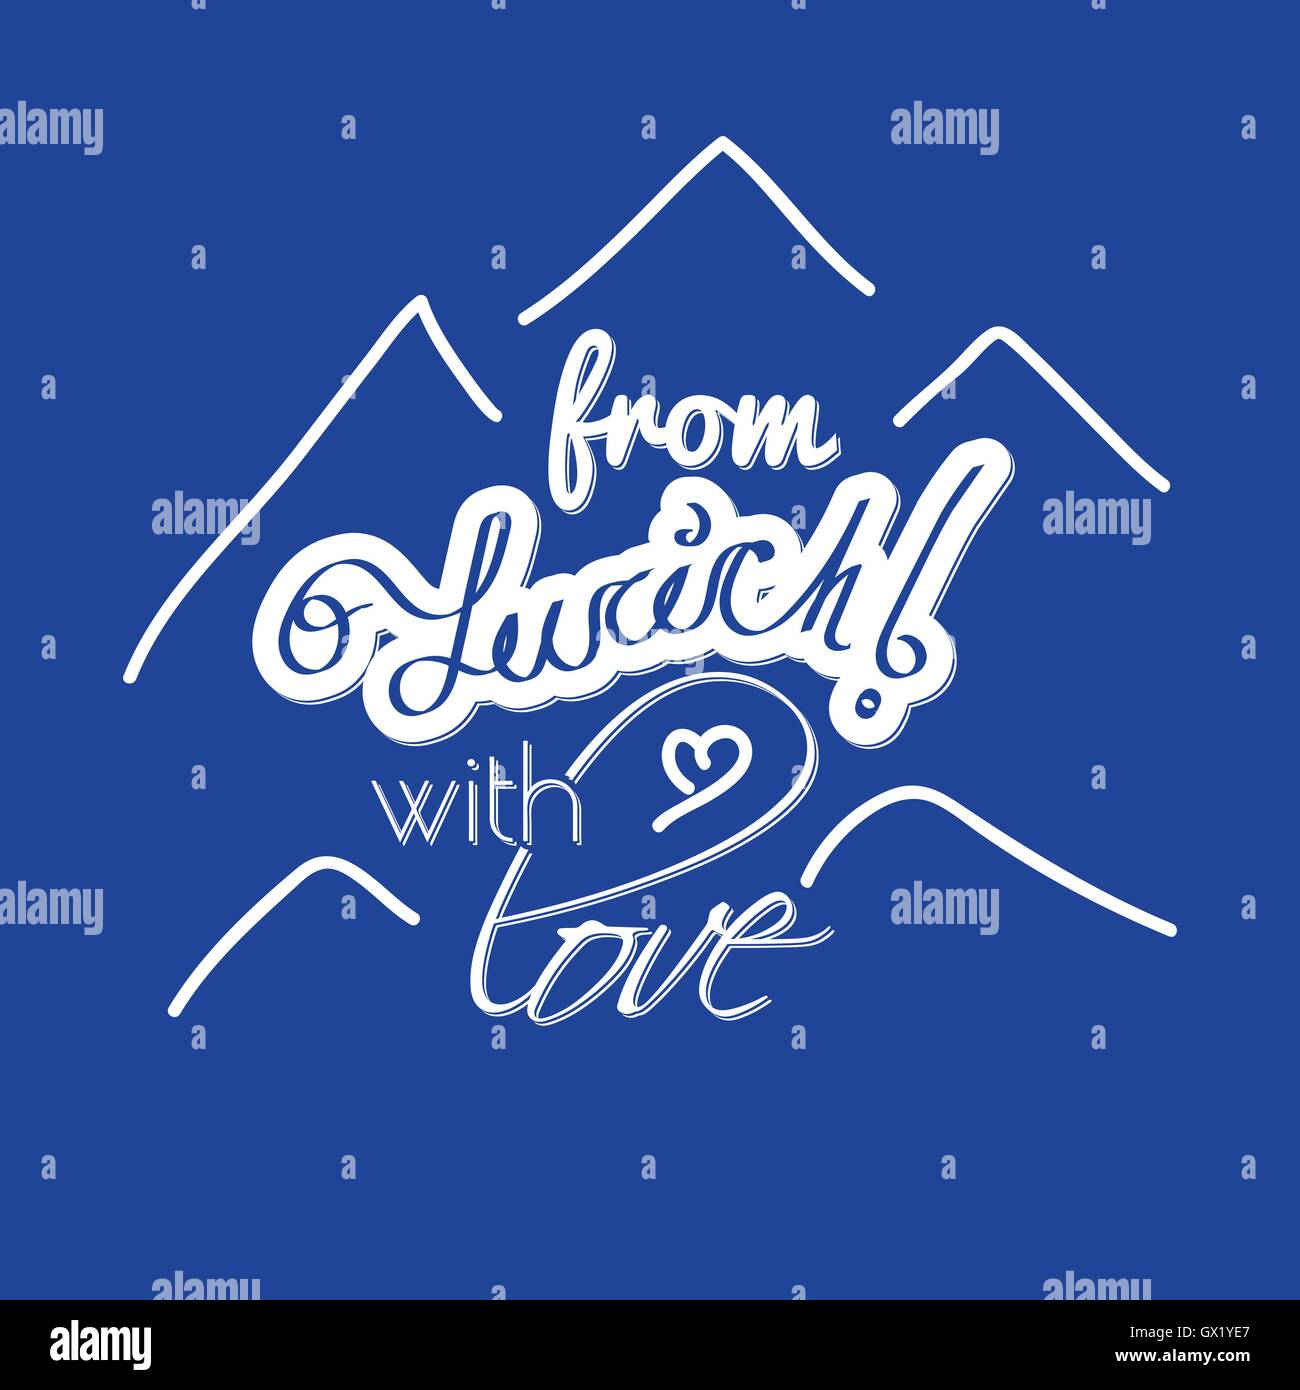 from Zurich with love, symbol of city with mountains for logotype or banner elements - Stock Vector